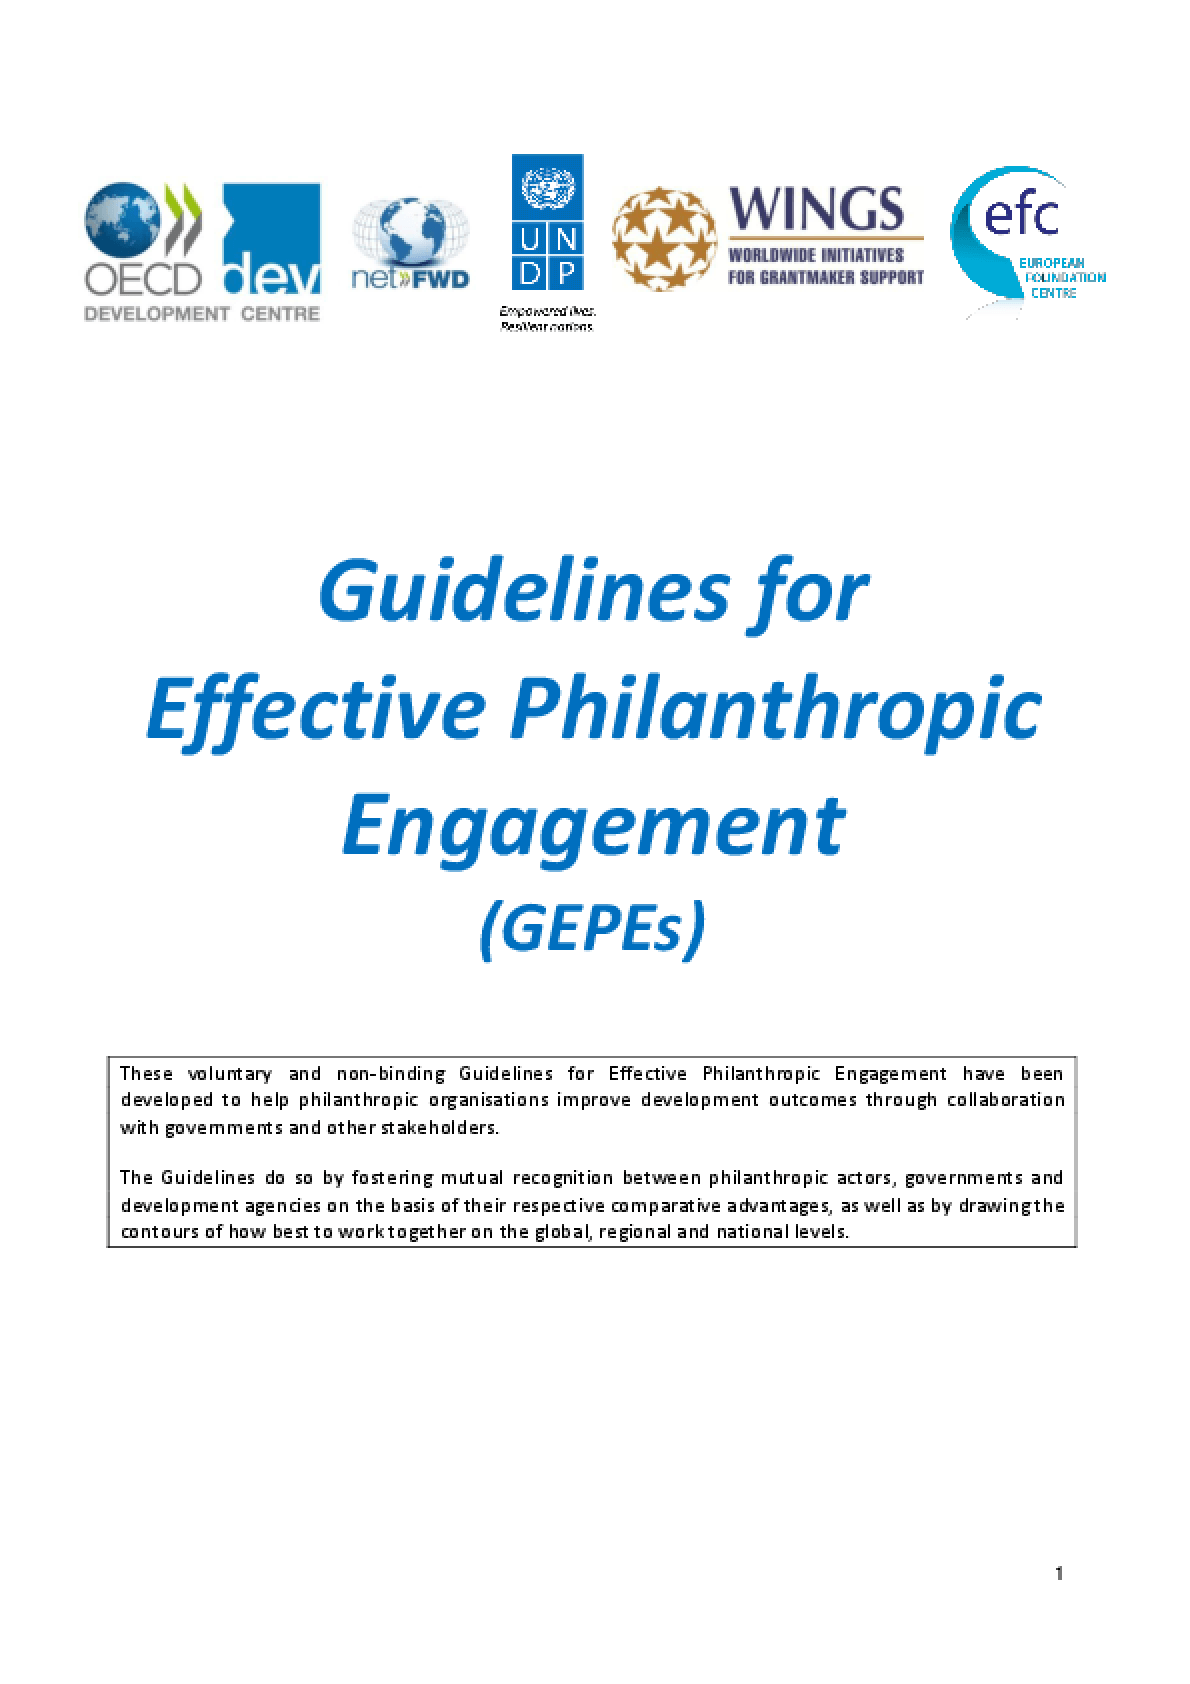 Guidelines for Effective Philanthropic Engagement (GEPEs)